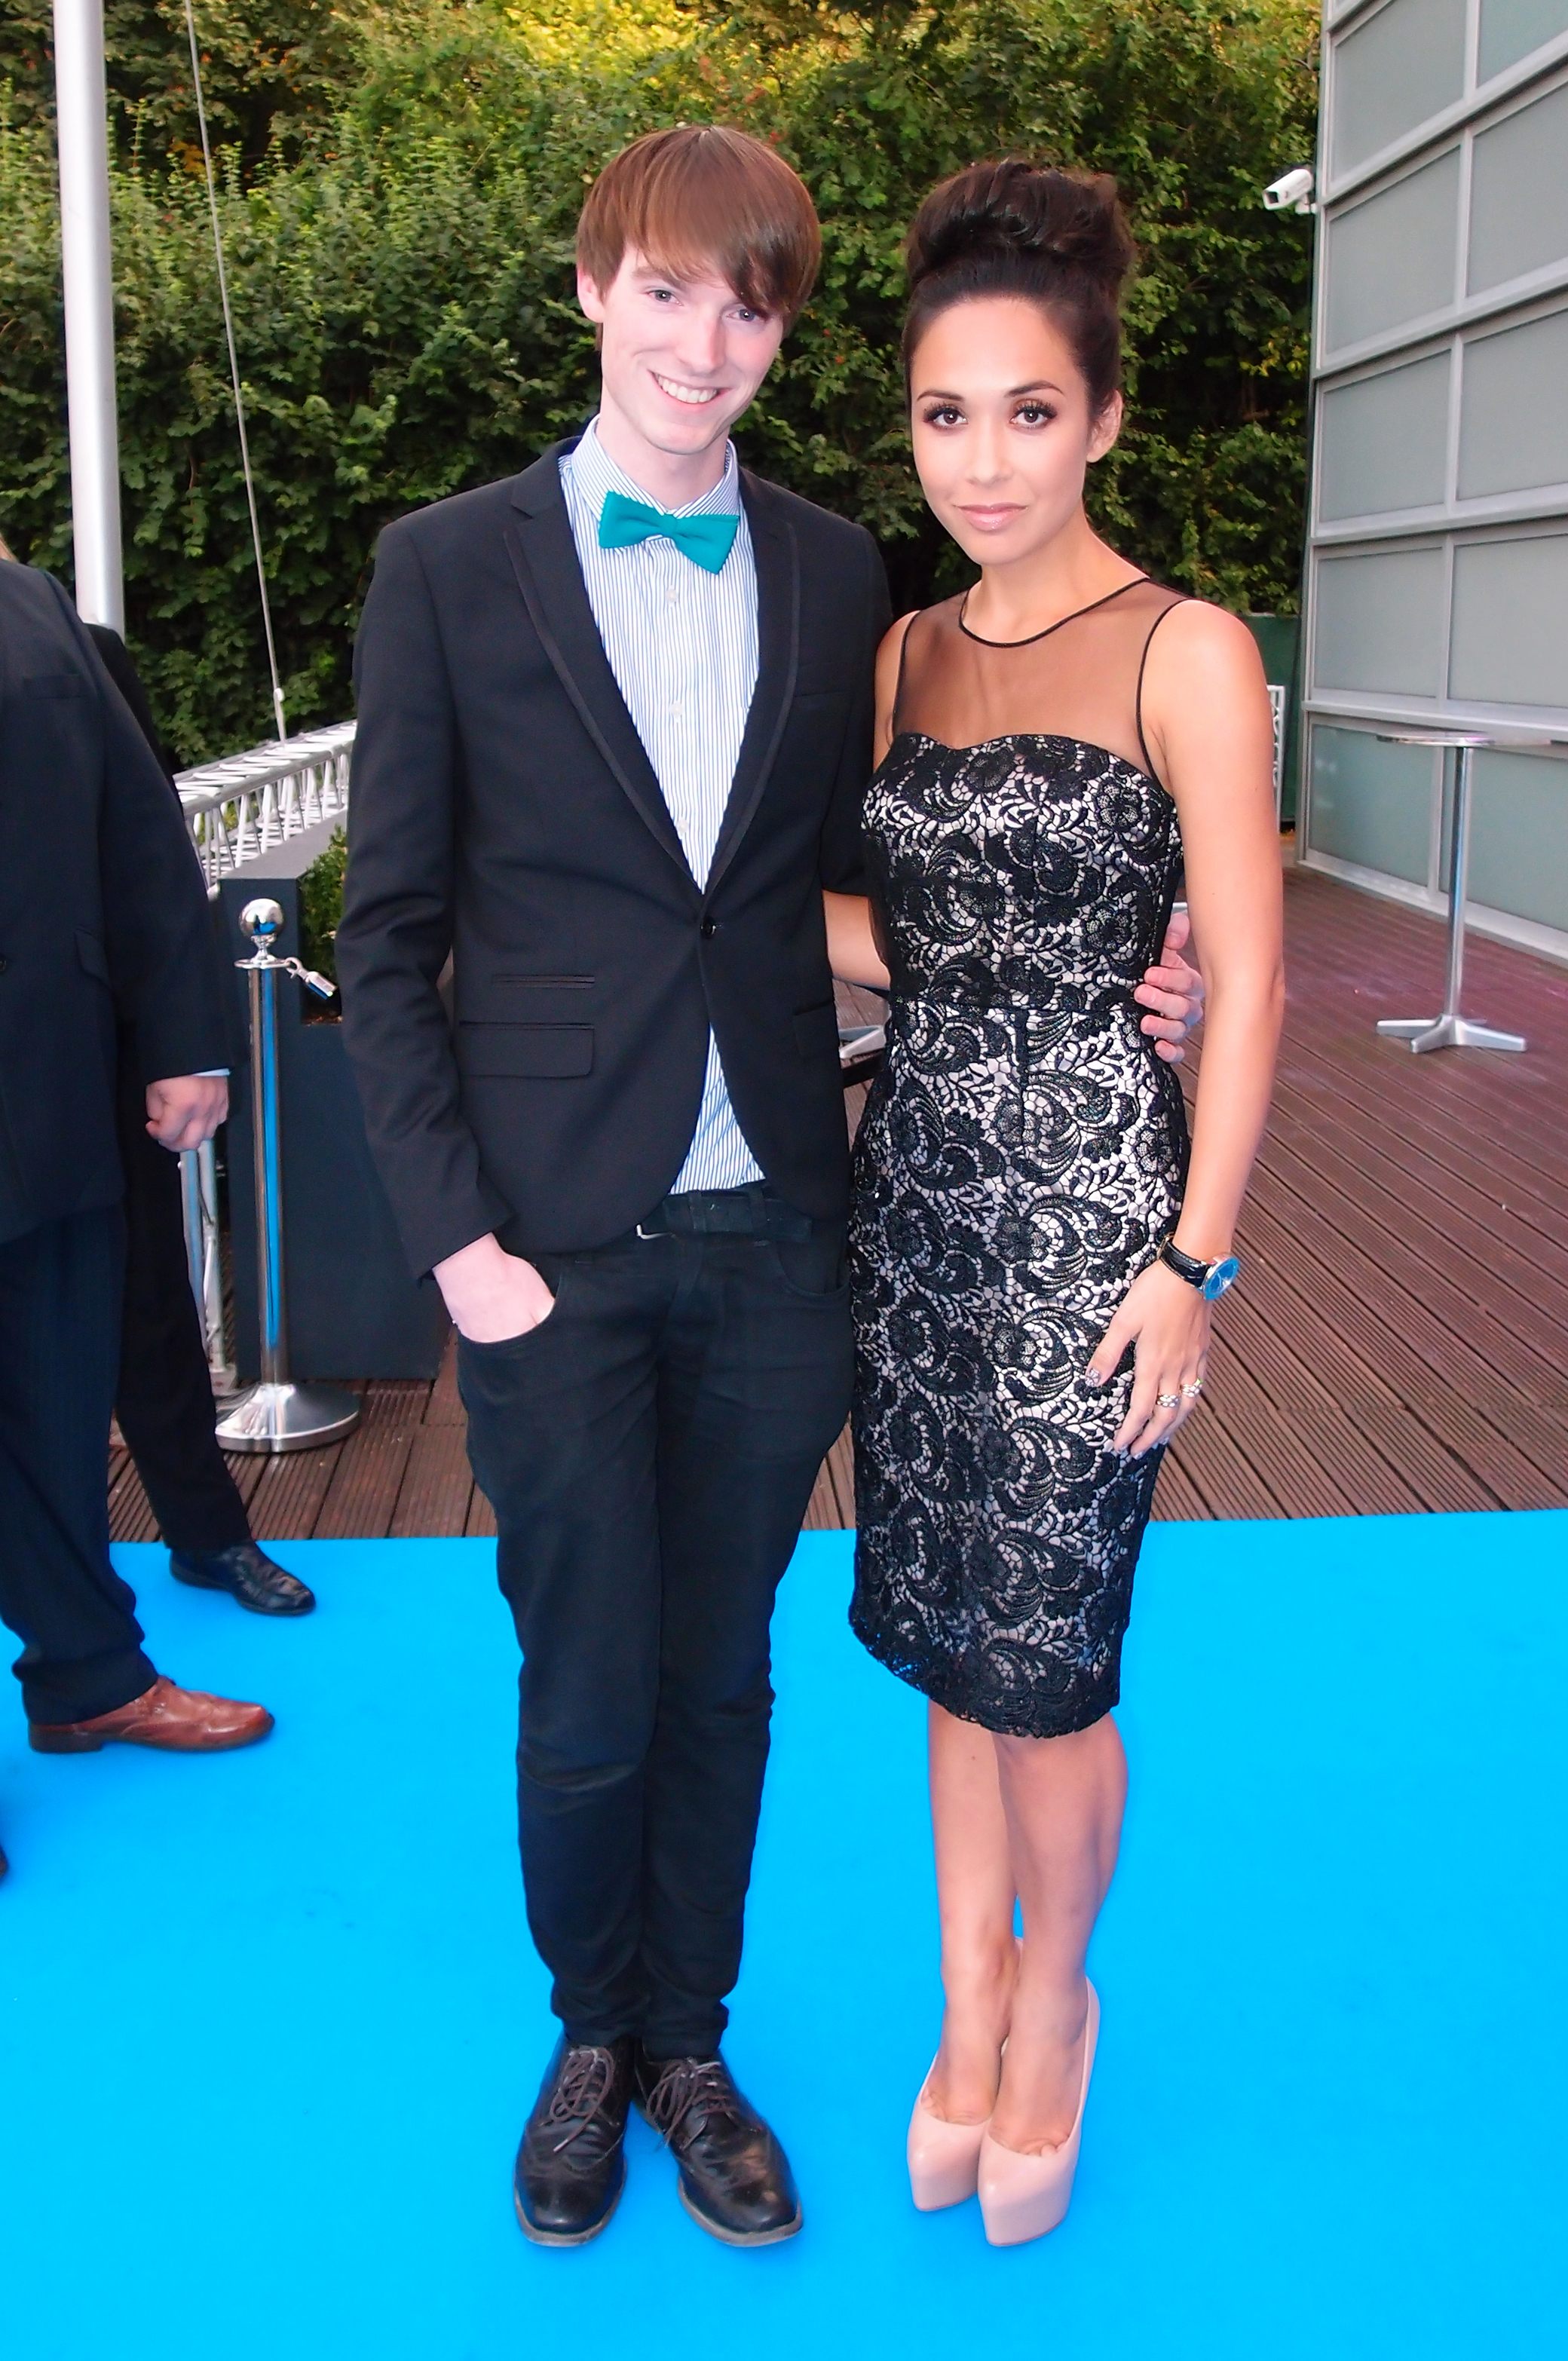 Richard Brownlie-Marshall & Myleene Klass